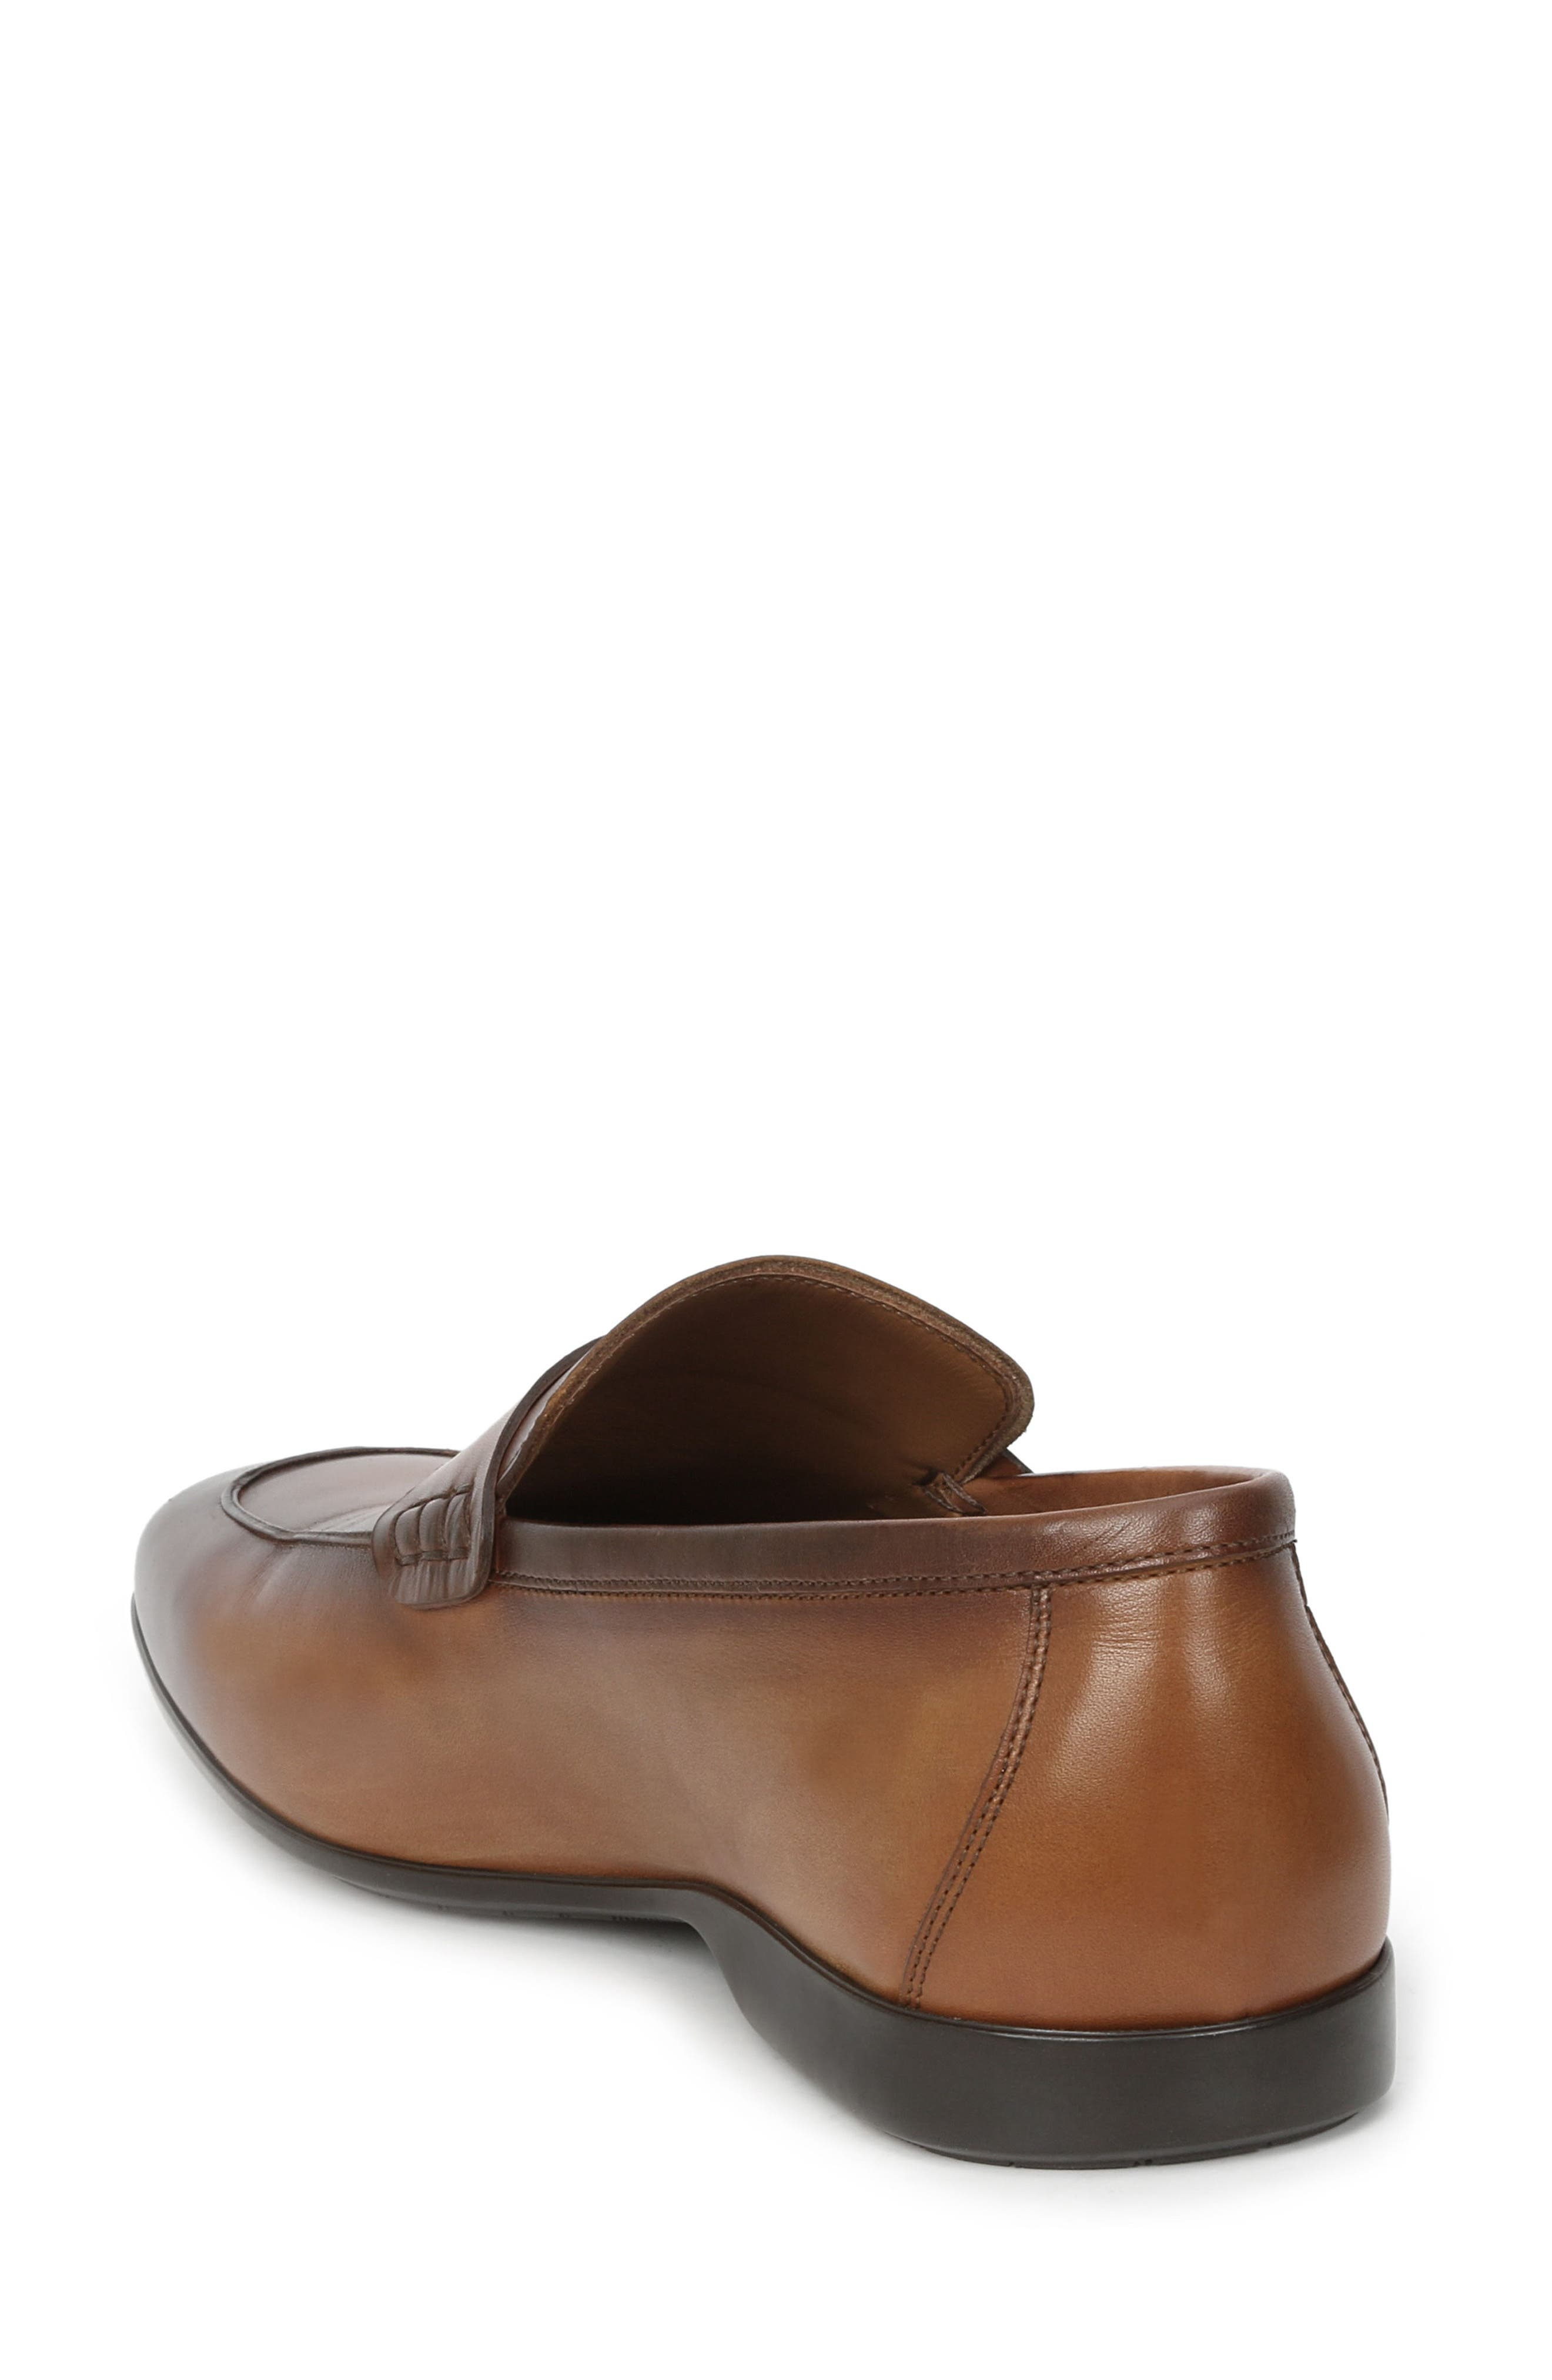 Margot Penny Loafer,                             Alternate thumbnail 2, color,                             Cognac